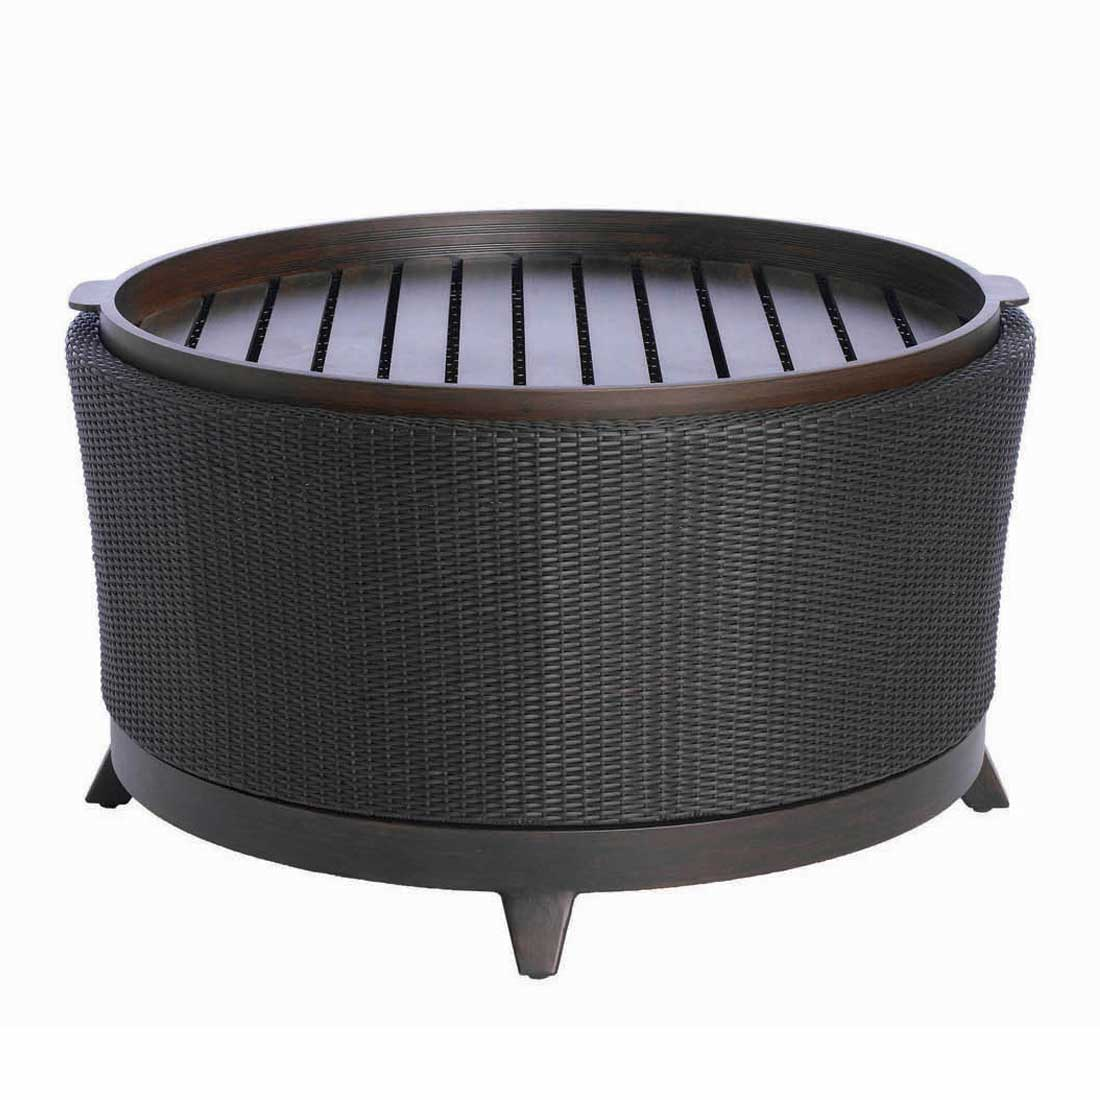 Round Wicker Coffee Table With Storage: Halo Outdoor Round Coffee Table